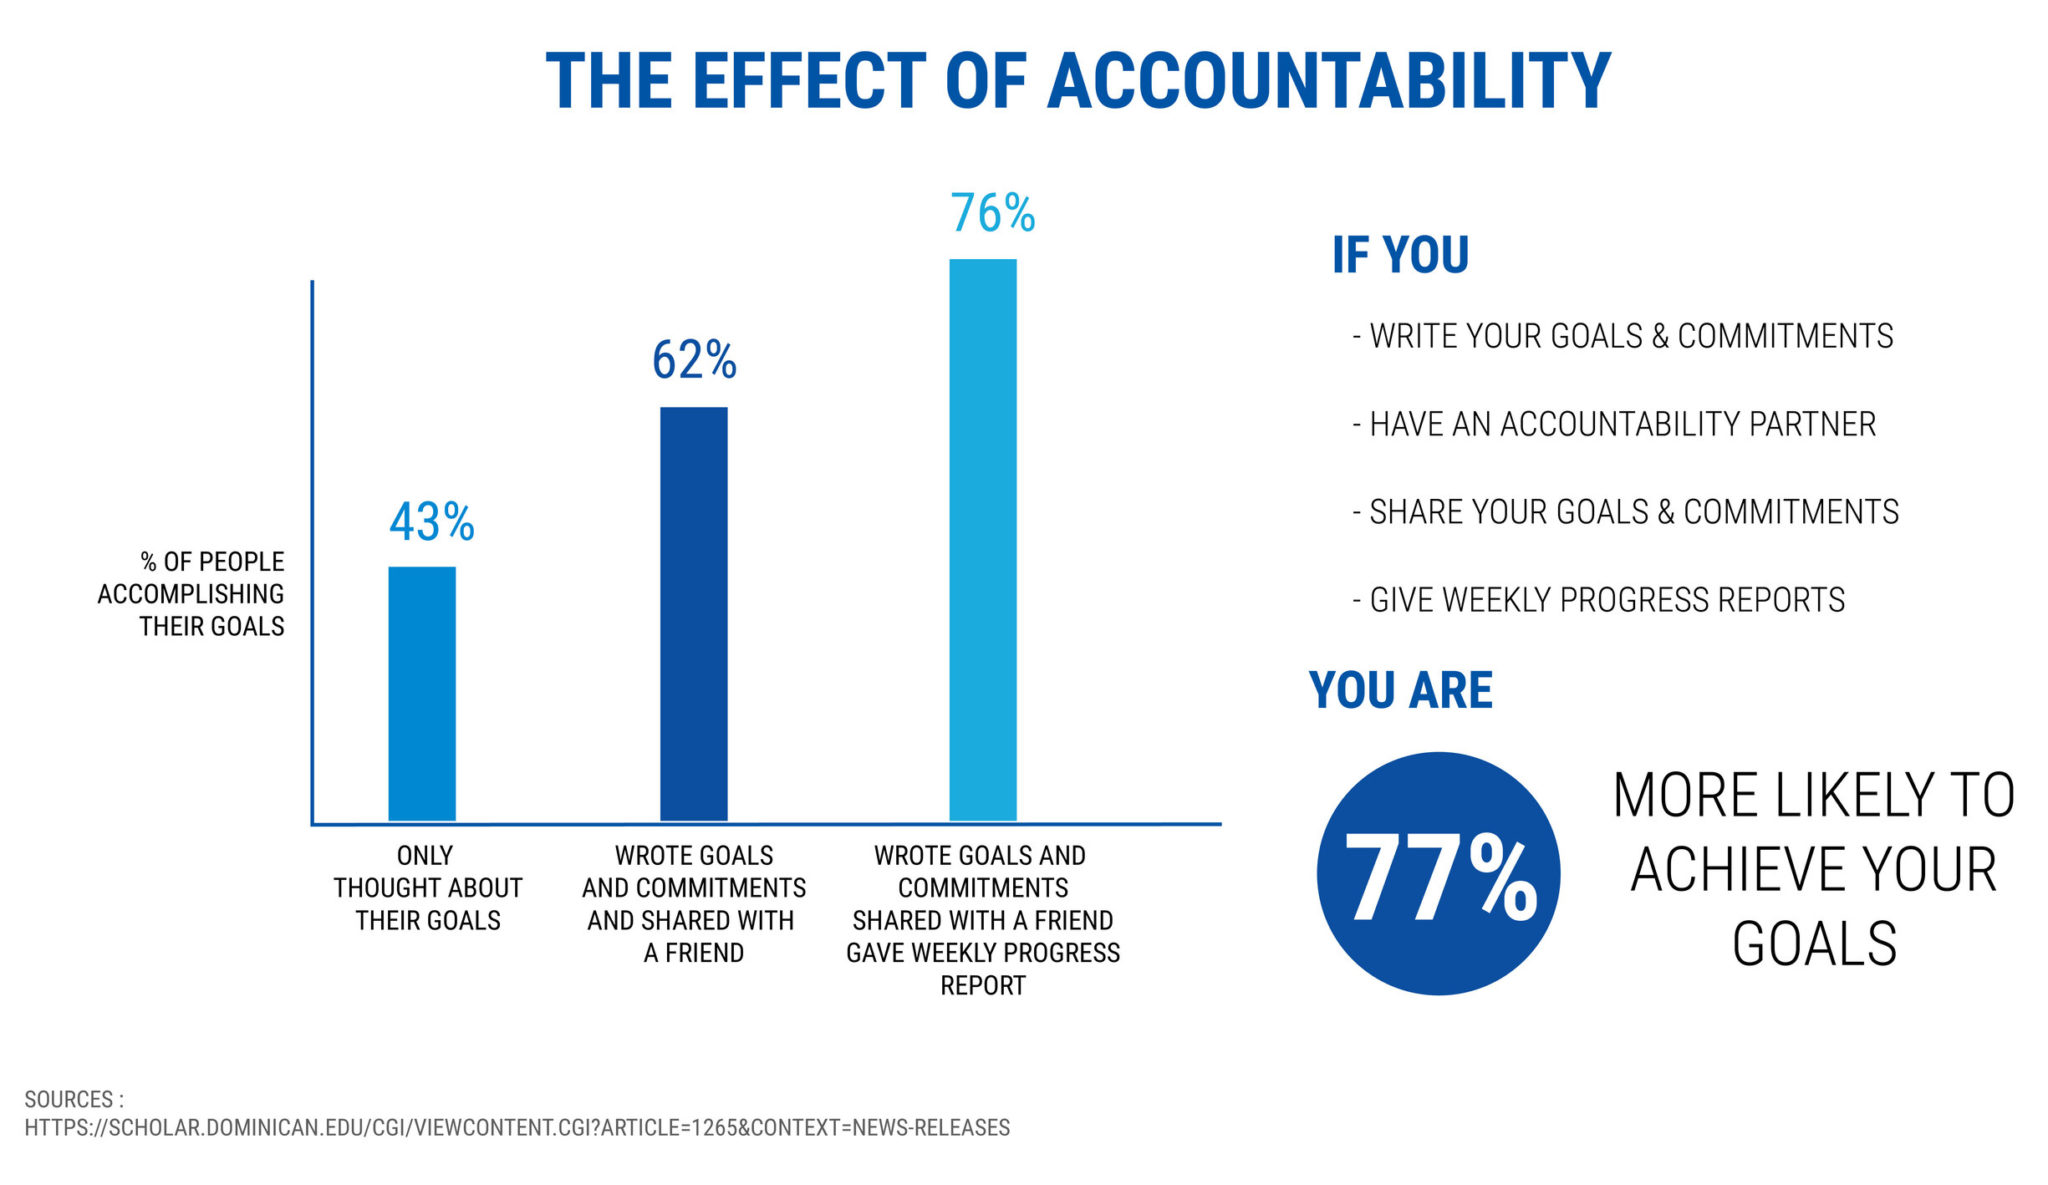 the effect of accountability - starting a coaching business while working full-time